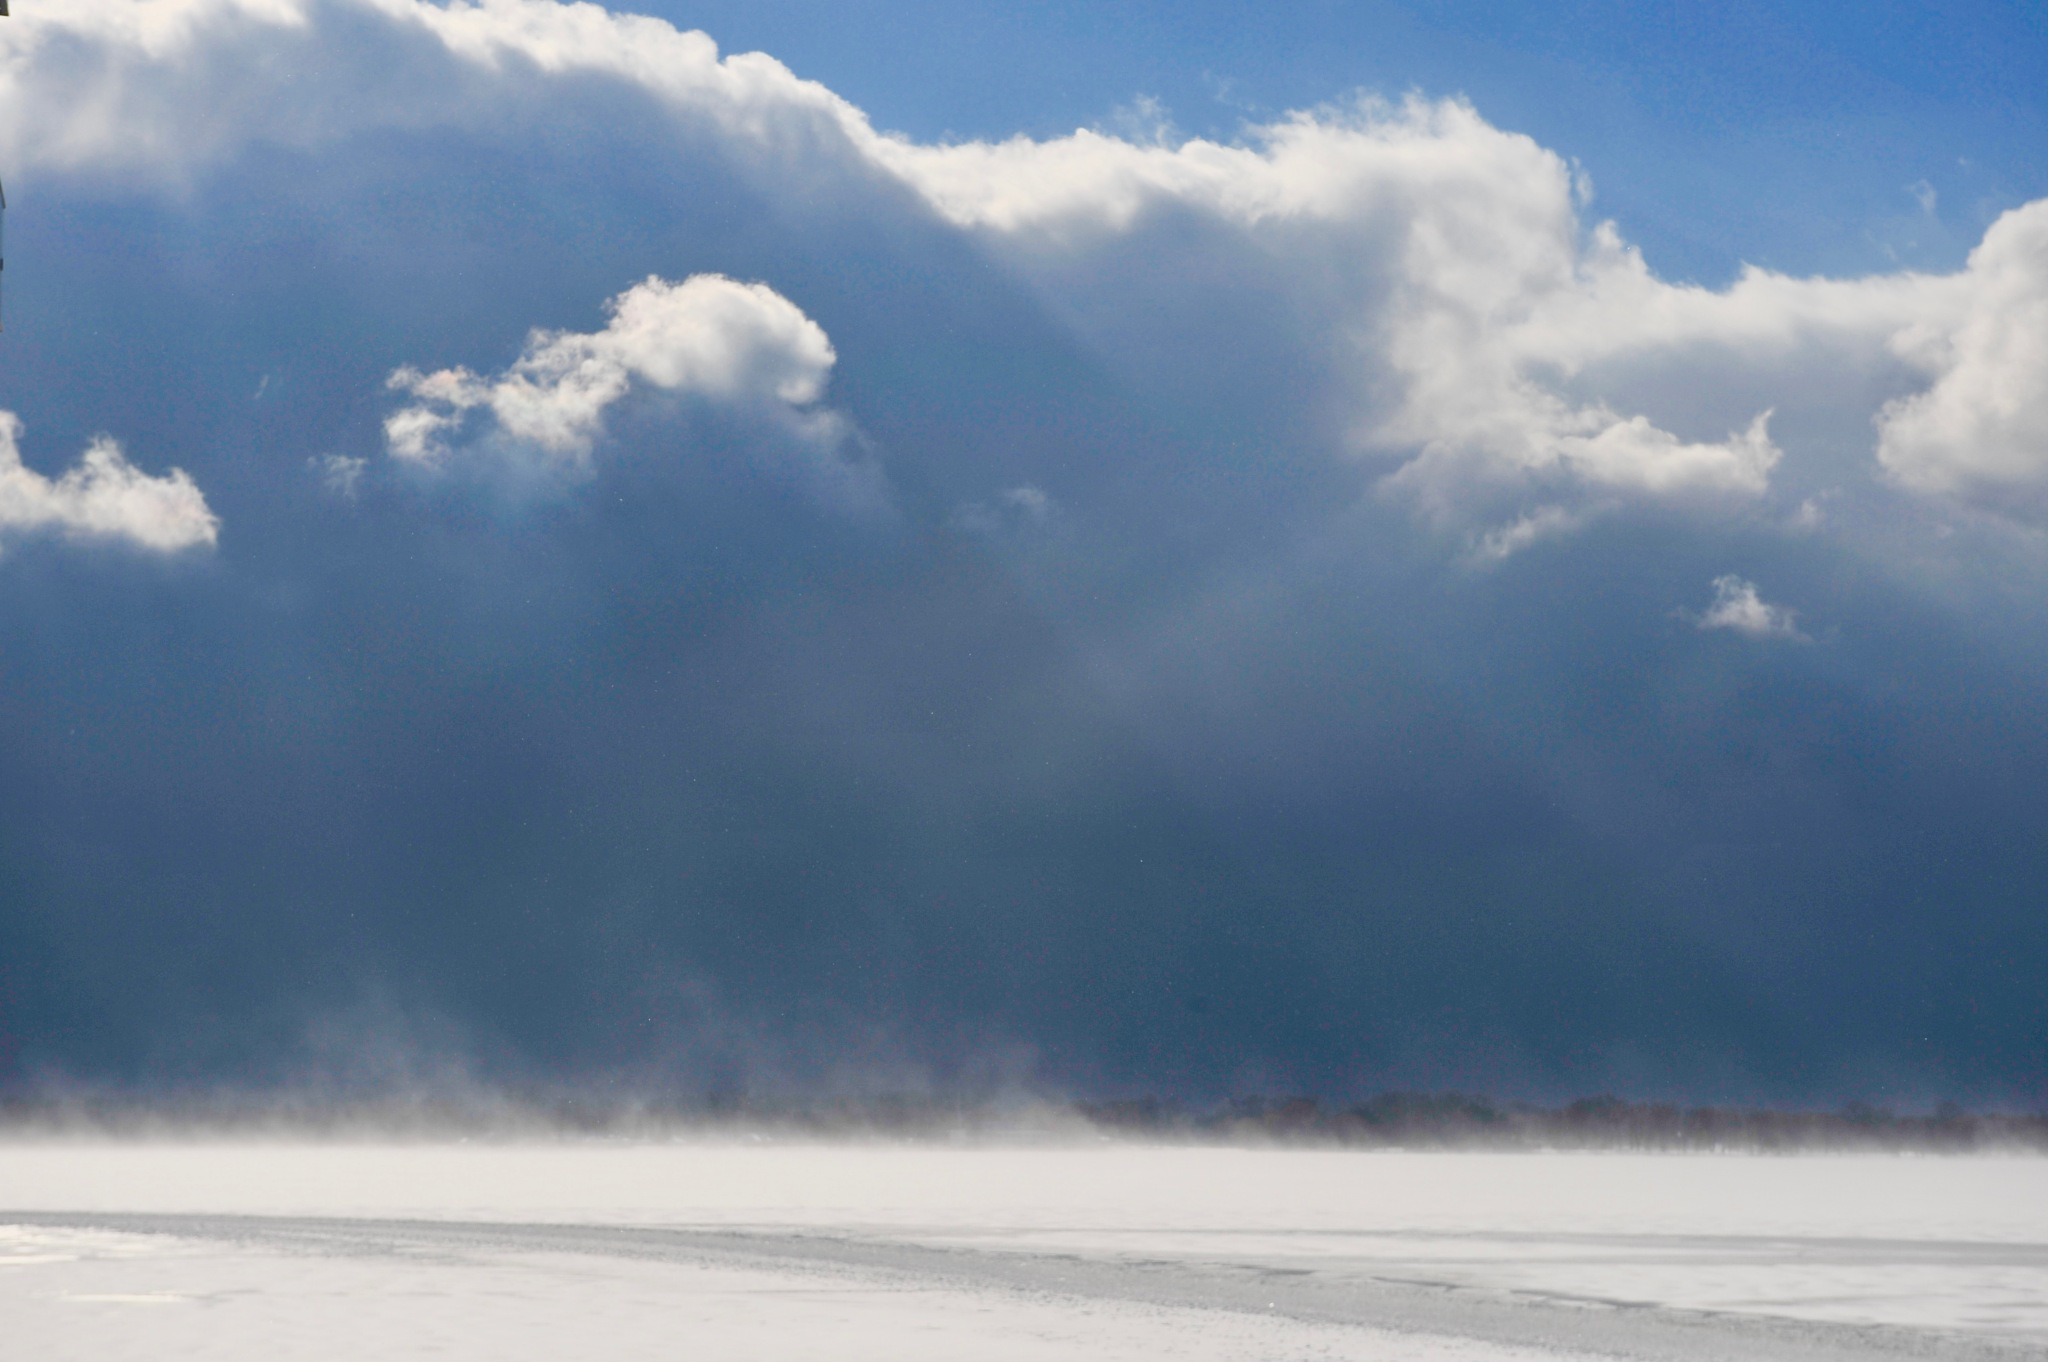 Blowing Lake Snow on the shore of Centre Island by Karen Bekker